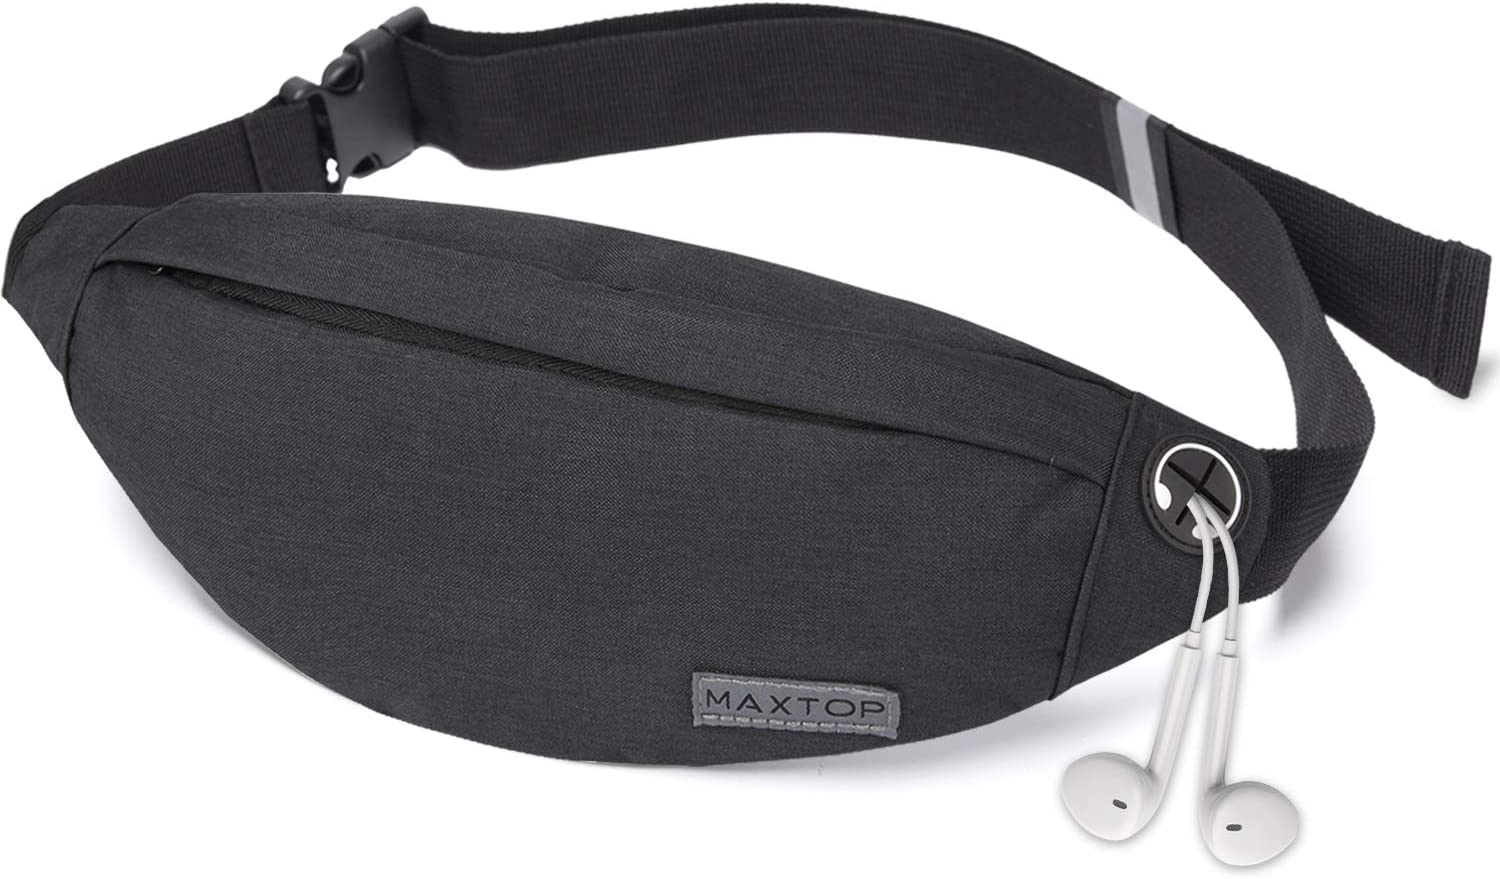 Best Grandpa Ever Sport Waist Packs Fanny Pack Adjustable For Travel